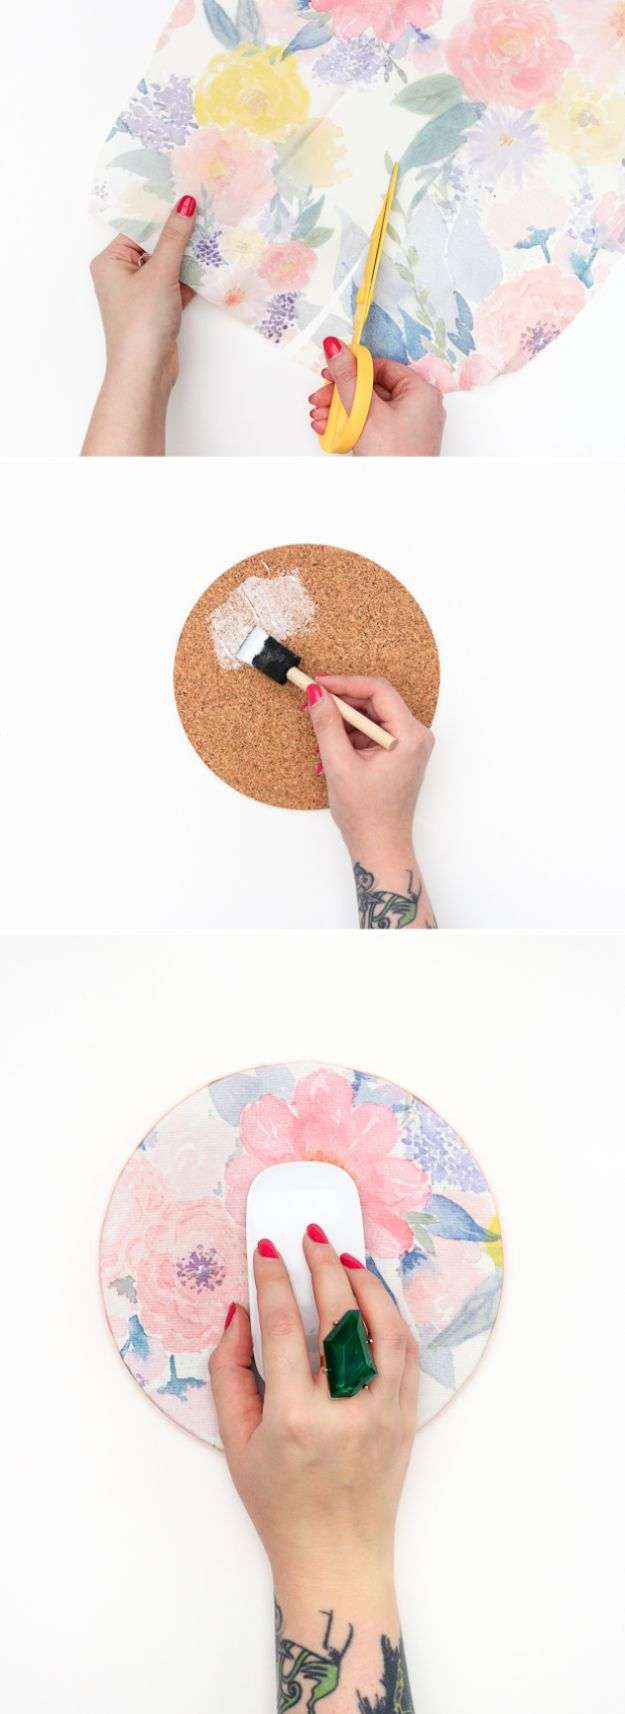 Easy Crafts for Teens - DIY Floral Mouse Pad - Cheap and Easy DIY Projects for Teenagers - Learn Basic Craft Techniques and Tutorials for Learning The Basics for Do It Yourself Projects and Fun Crafts - Easy Step by Step Tutorials for Making Pom Poms, Using a Glue Gun, Painting How To and More - Cool Ideas for Teens, Teenagers and Adults - Cheap Arts and Crafts Ideas and Tips